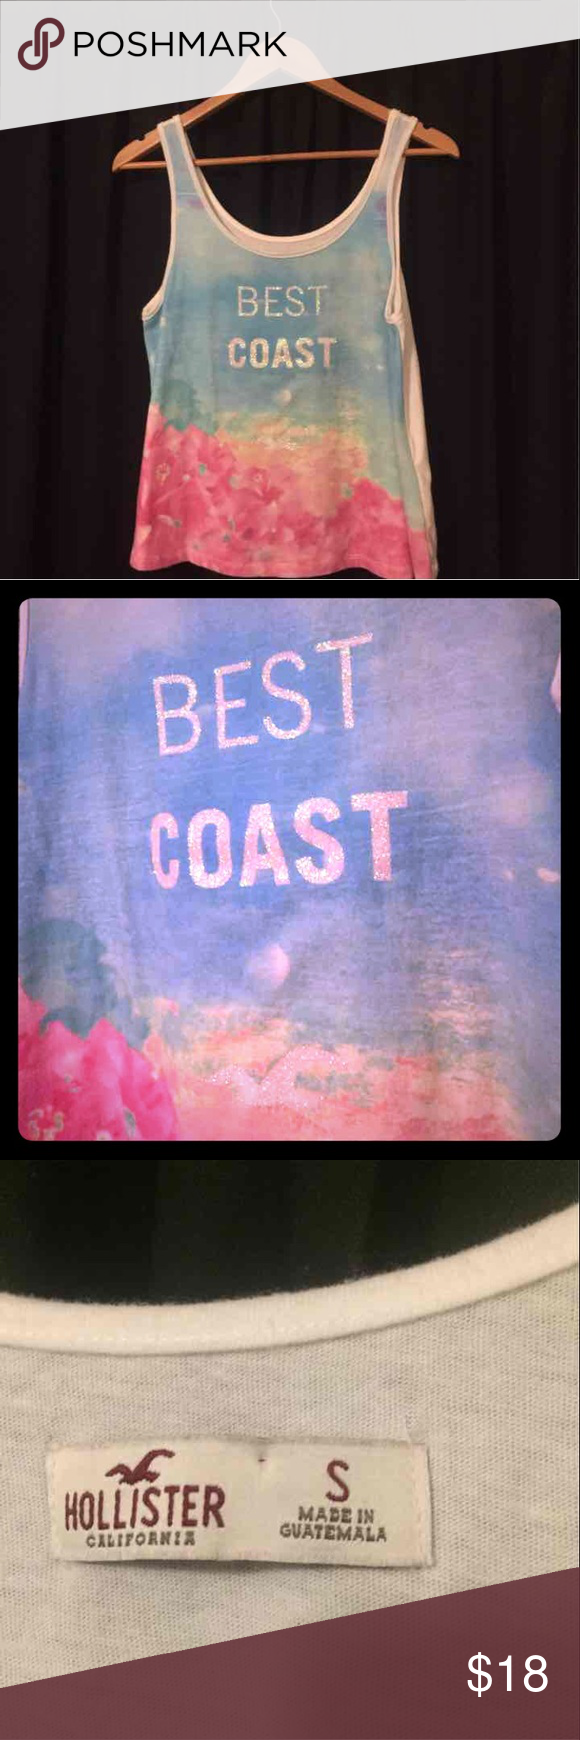 Hollister tank top Print is only on one side. Fits loosely Hollister Tops Tank Tops